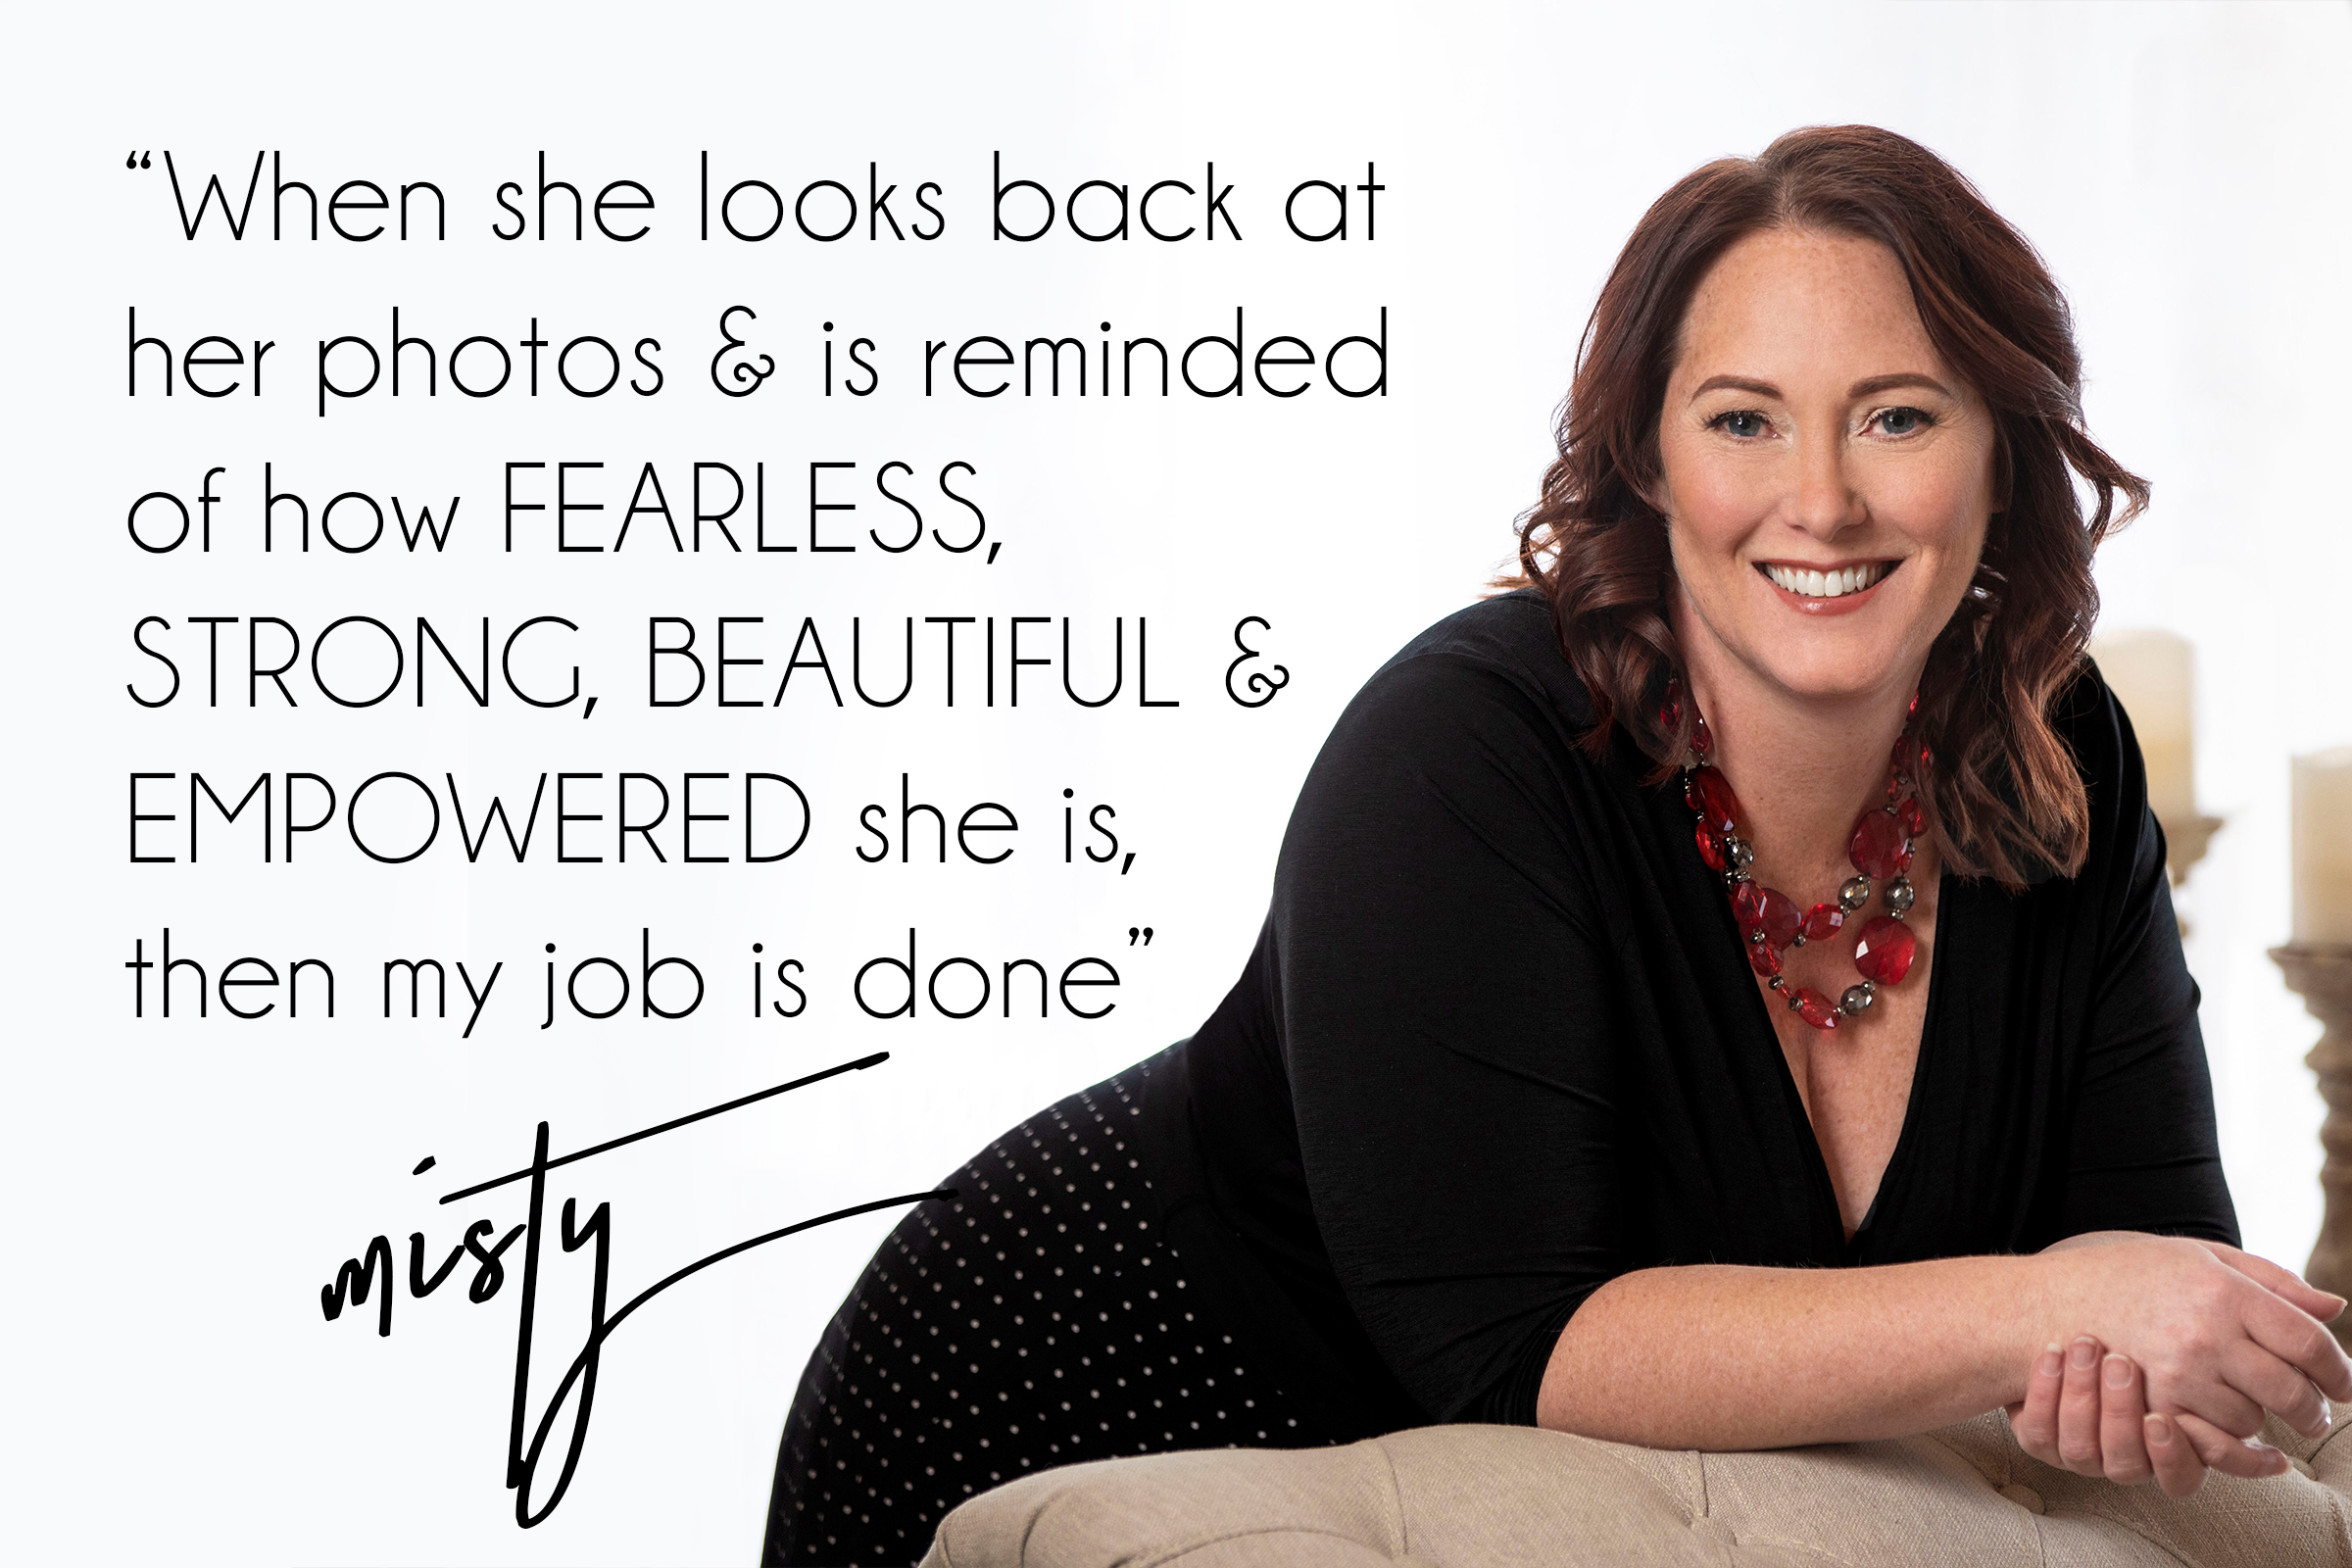 Quote by Misty Boles, Intimate Photographer in Helena Montana